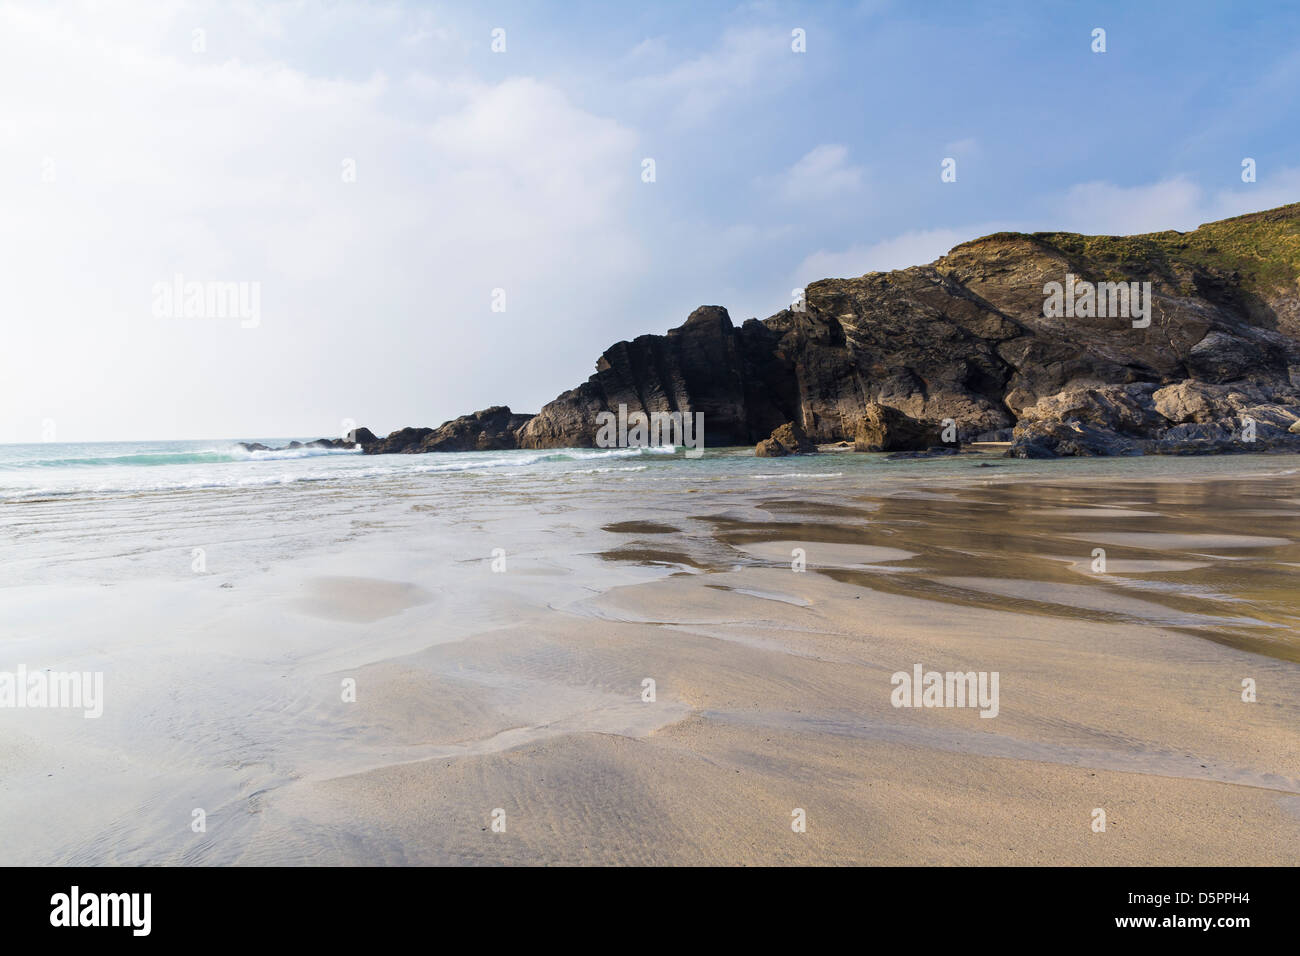 On the beach at Polurrian Cove Mullion Cornwall England UK - Stock Image